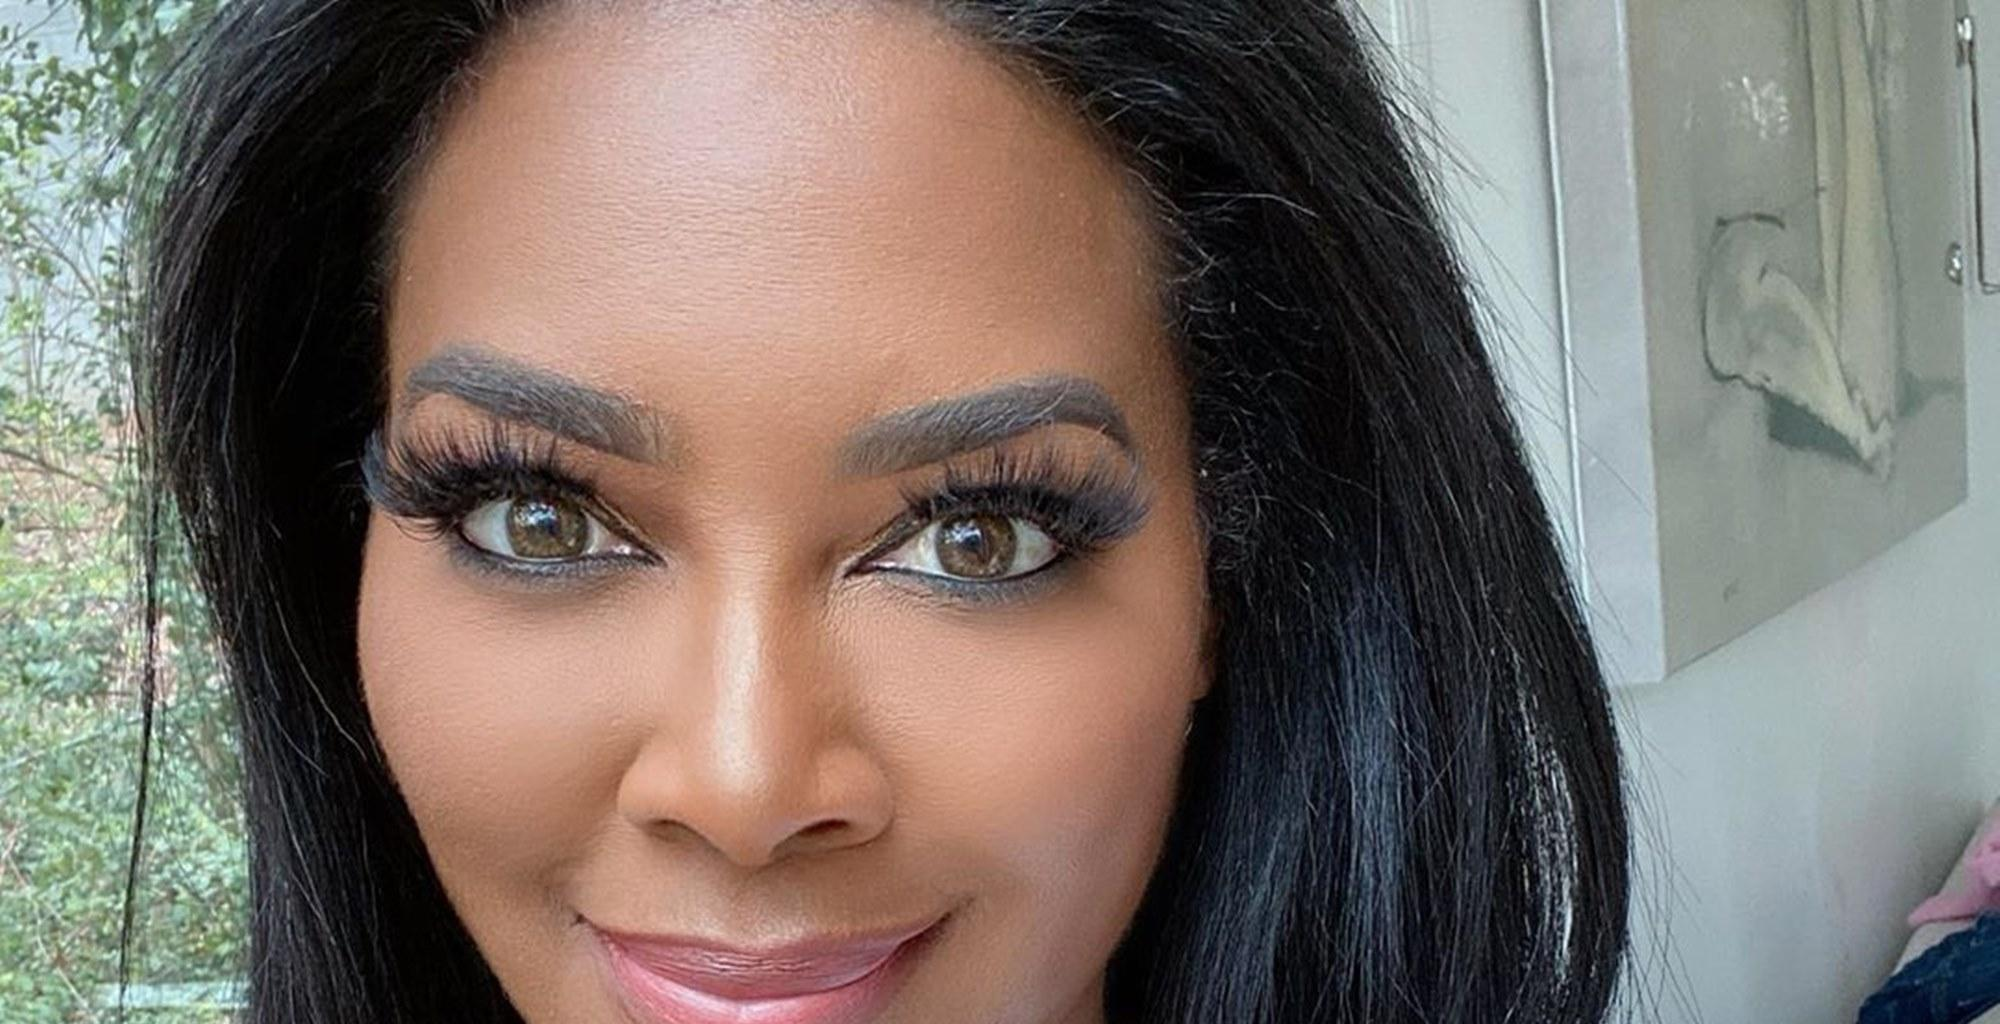 Kenya Moore Wishes A Happy Valentine's Day To Her Fans